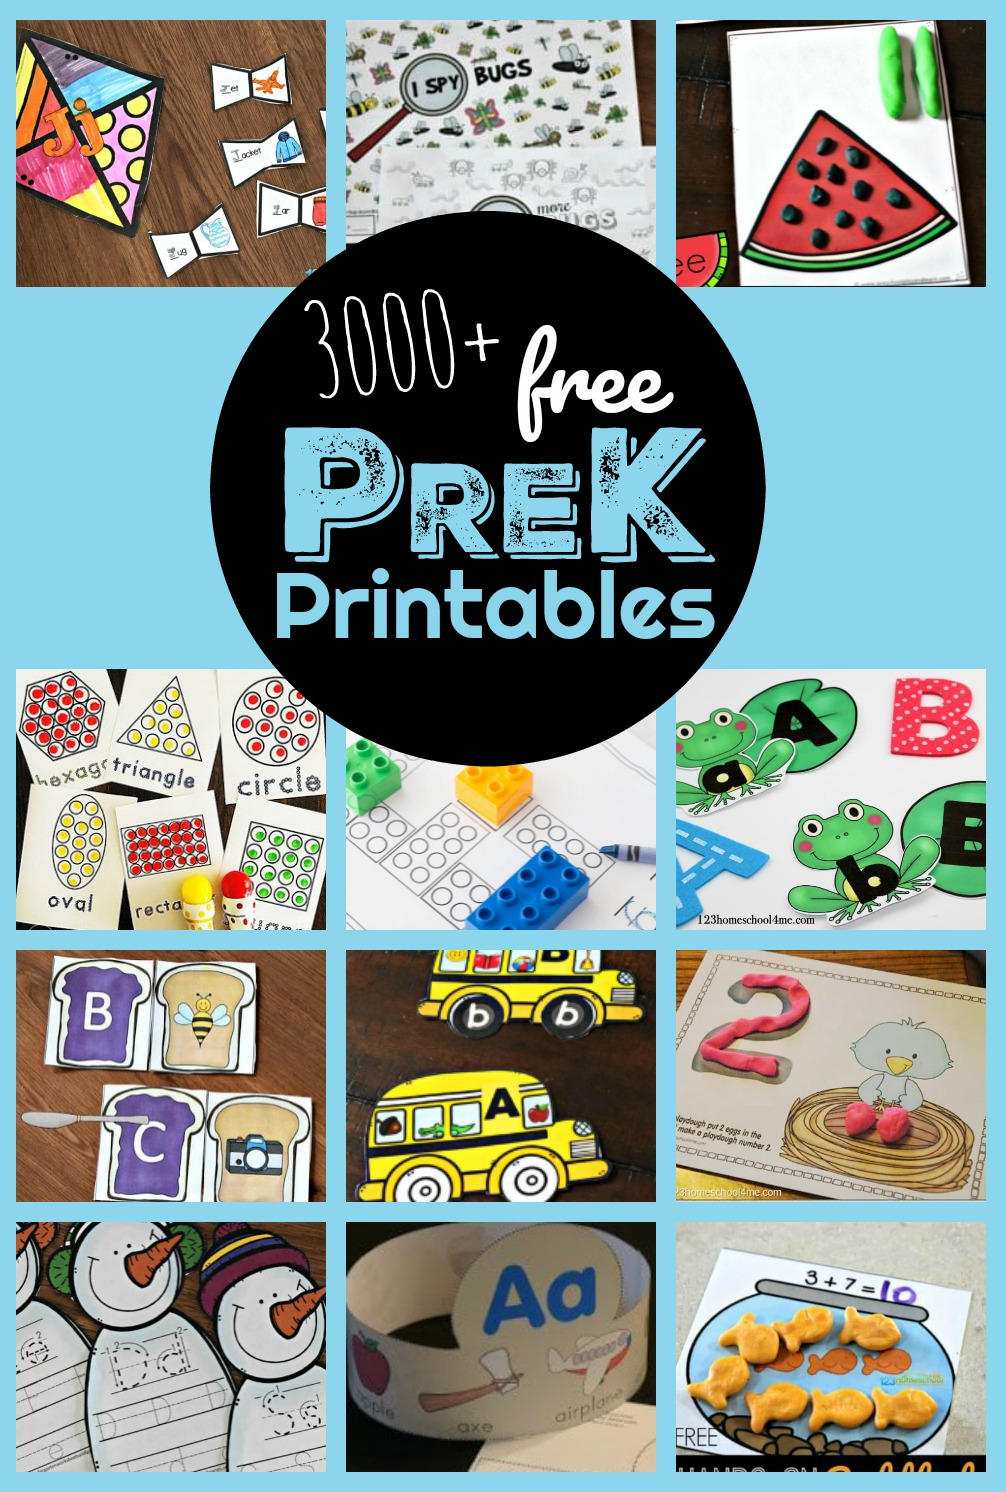 3000+ FREE Preschool and Pre k Worksheets, games, printables, crafts and activities to learn abcs, trace alphabet letters, counting, 1:1 corresondence, addition, pattners, letter recognition, shapes, and more! #preschool #prek #homeschool